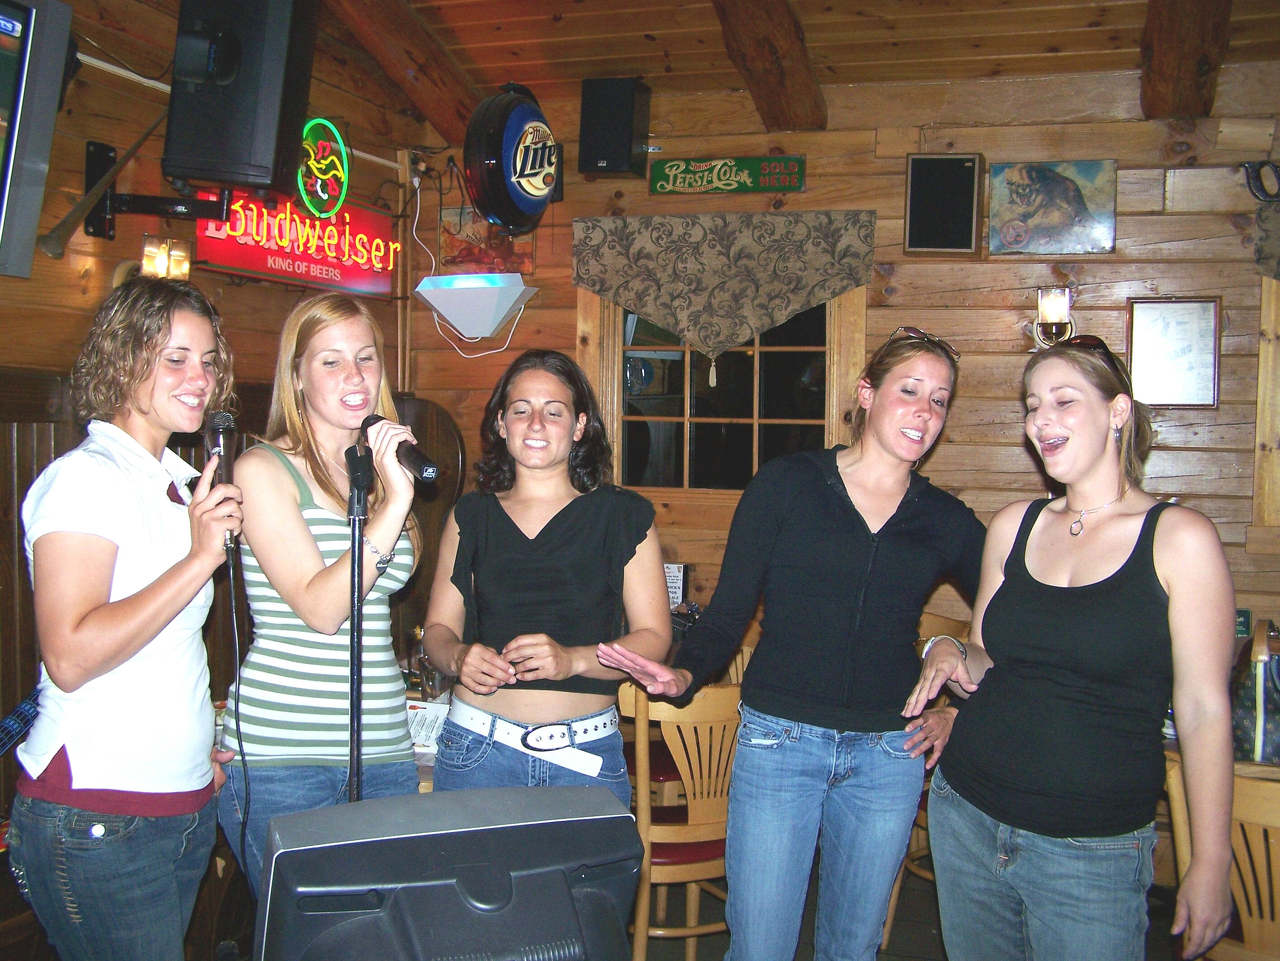 superstar entertainment karaoke fun bar pub singing sing nj dj kj